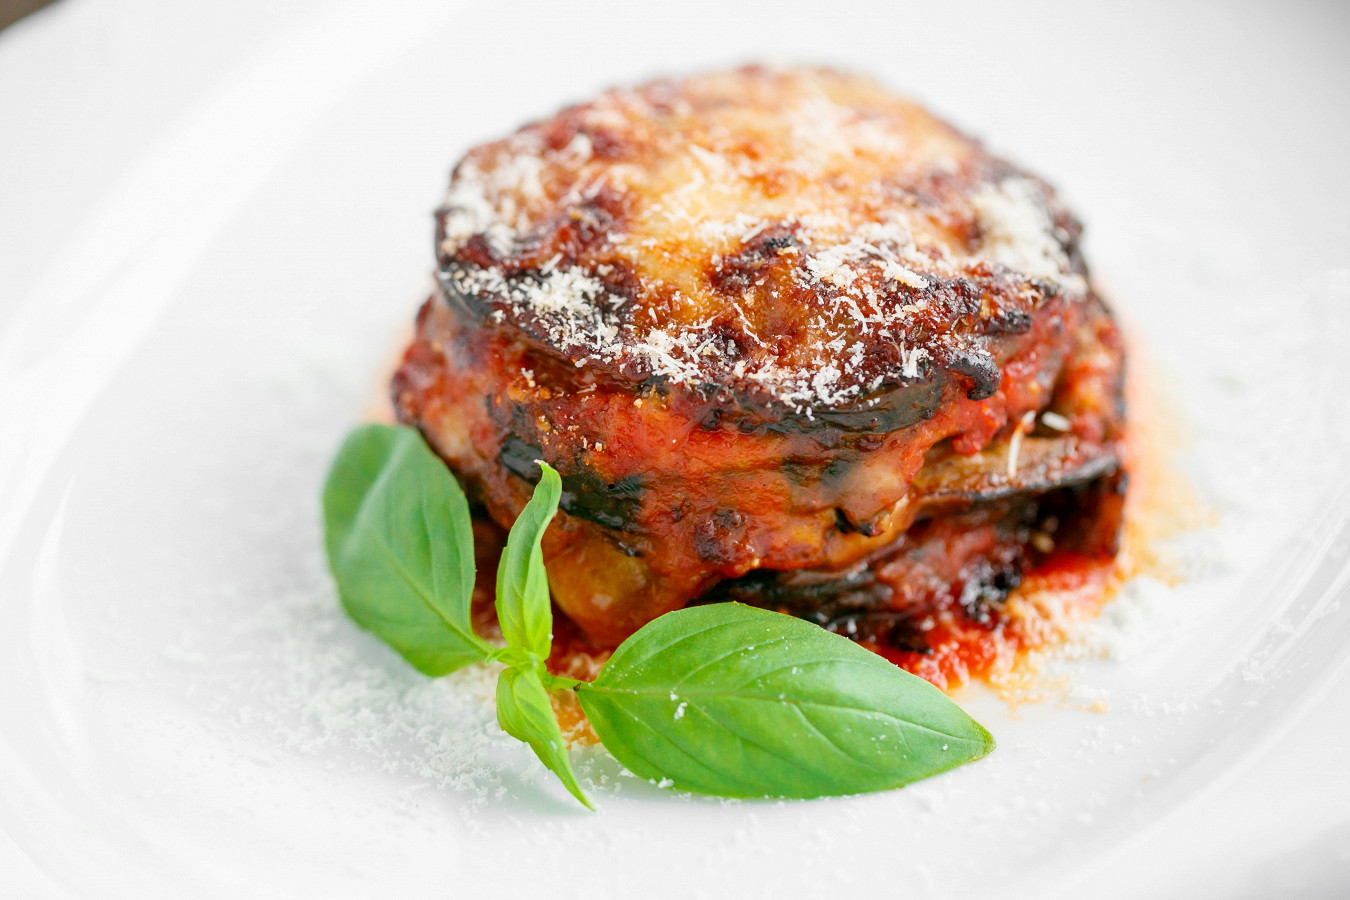 Parmigiana with mozzarella and parmesan cheese